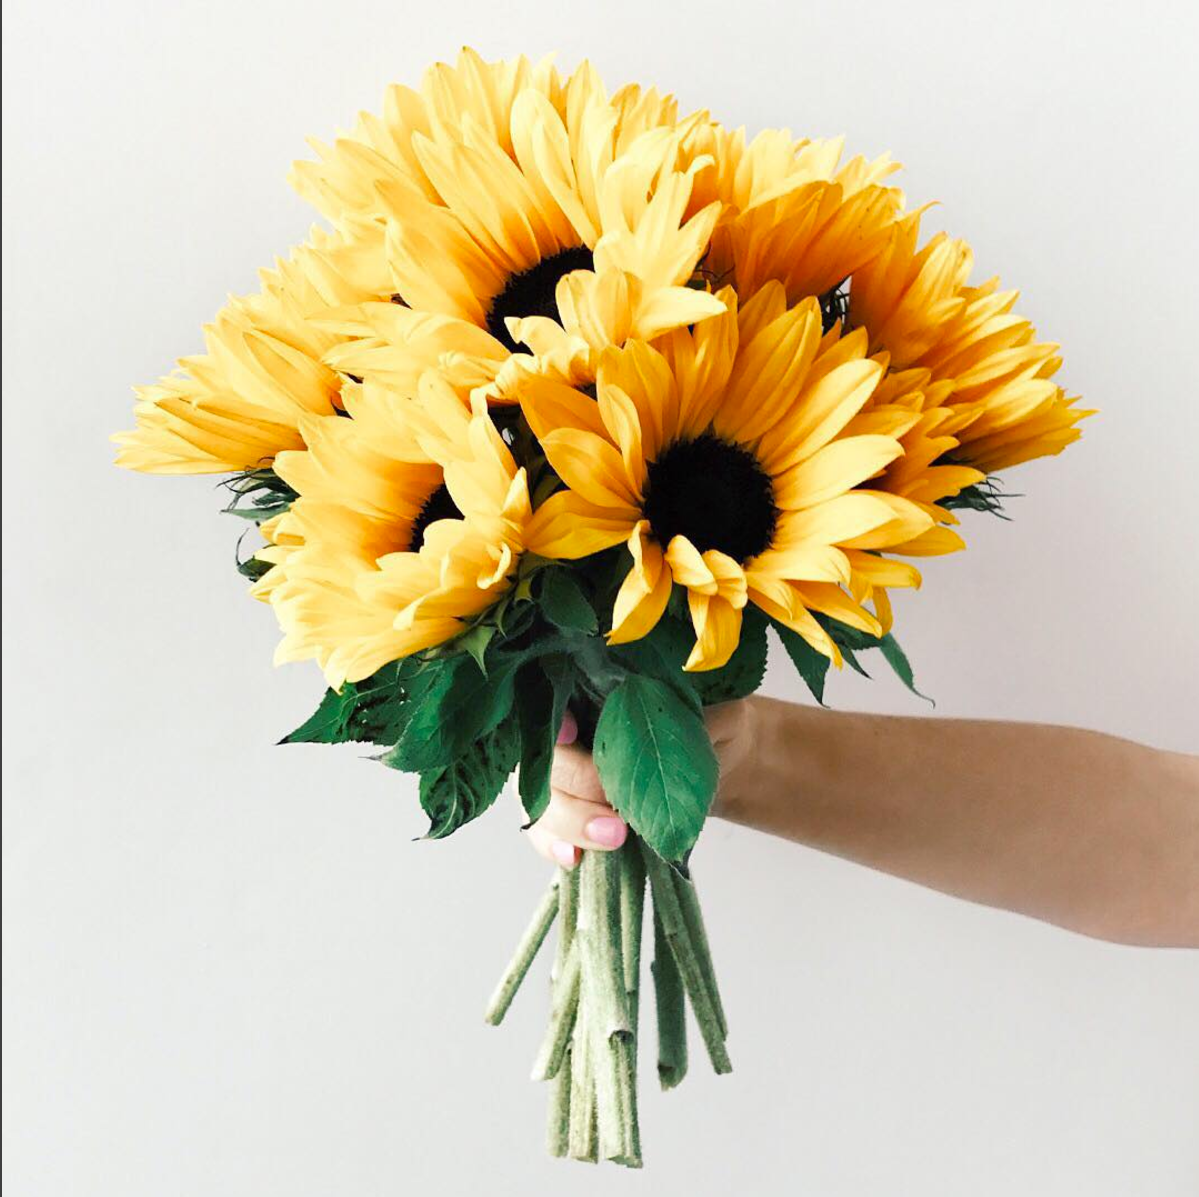 Your daily dose of happiness. 🌻